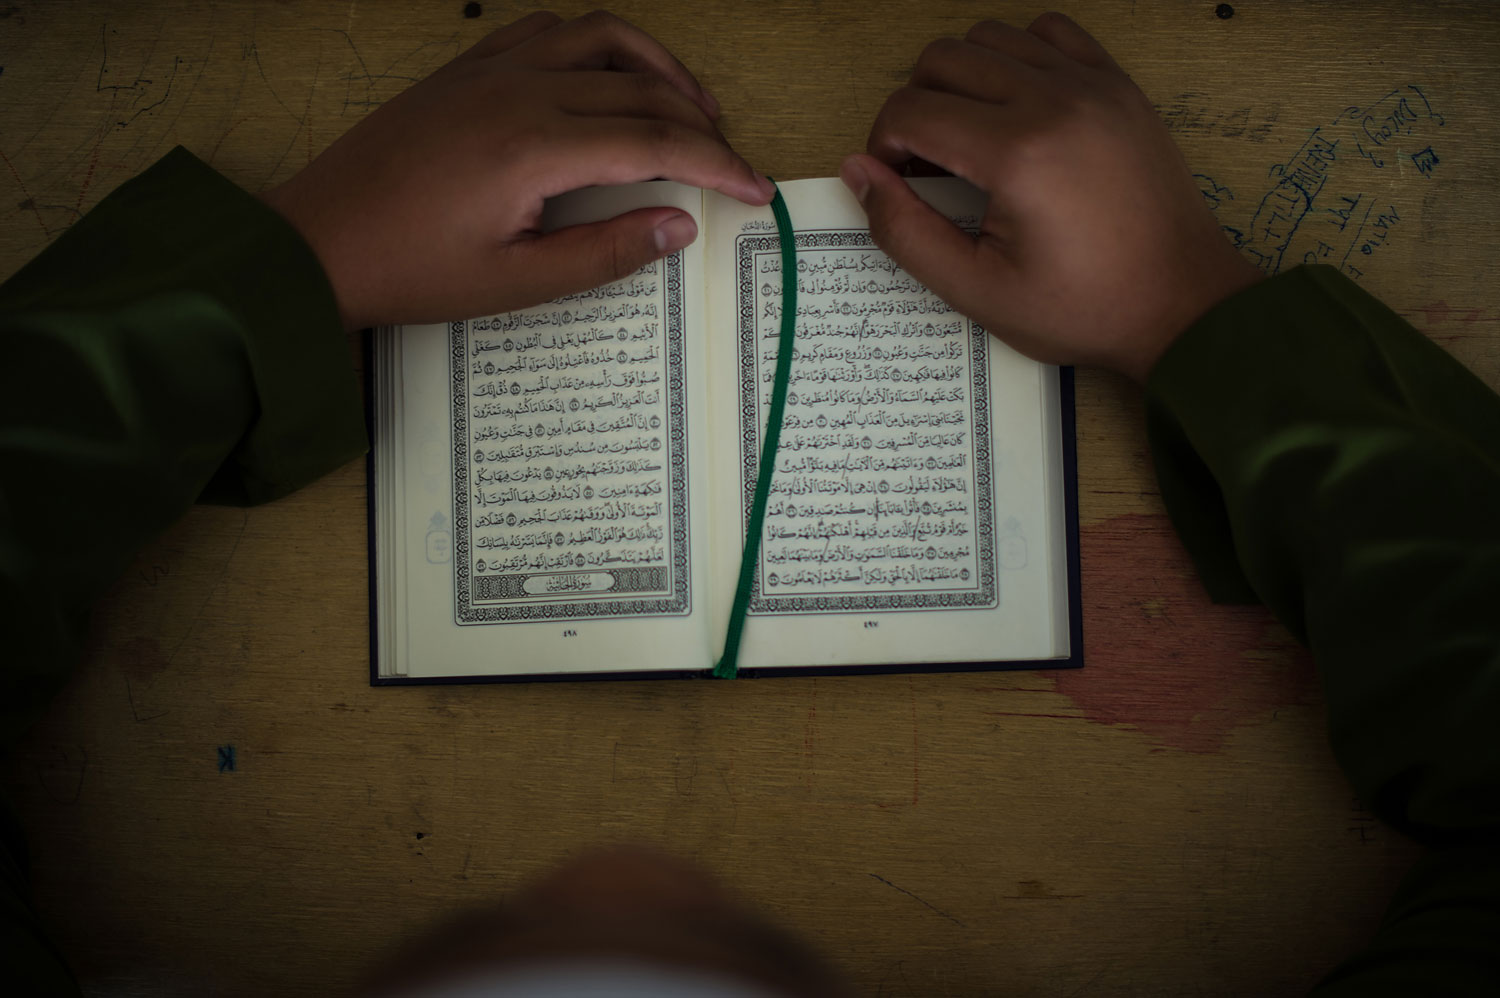 A Muslim boy reads the Koran during the month of Ramadan, Kuala Lumpur, July 30, 2013.